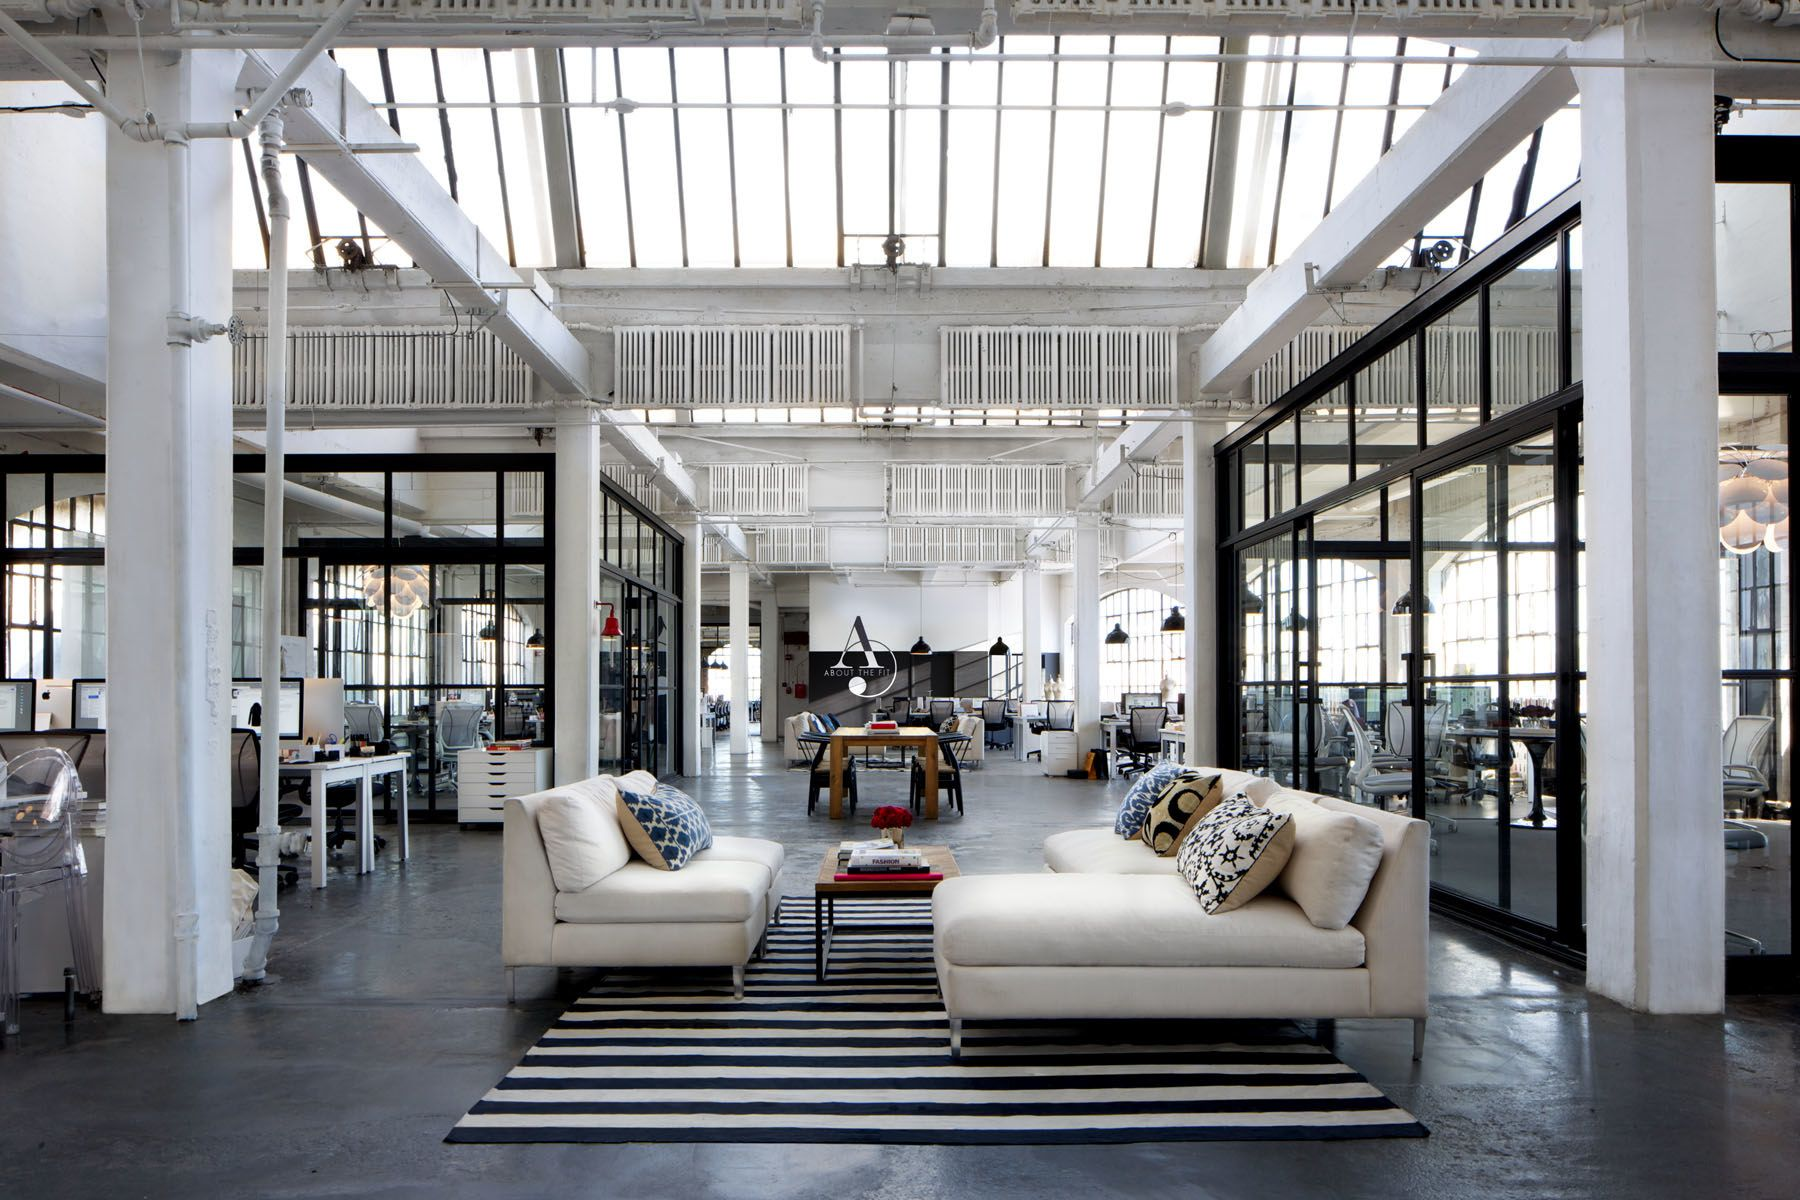 The intern set located in a photo studio of the bank note building in the